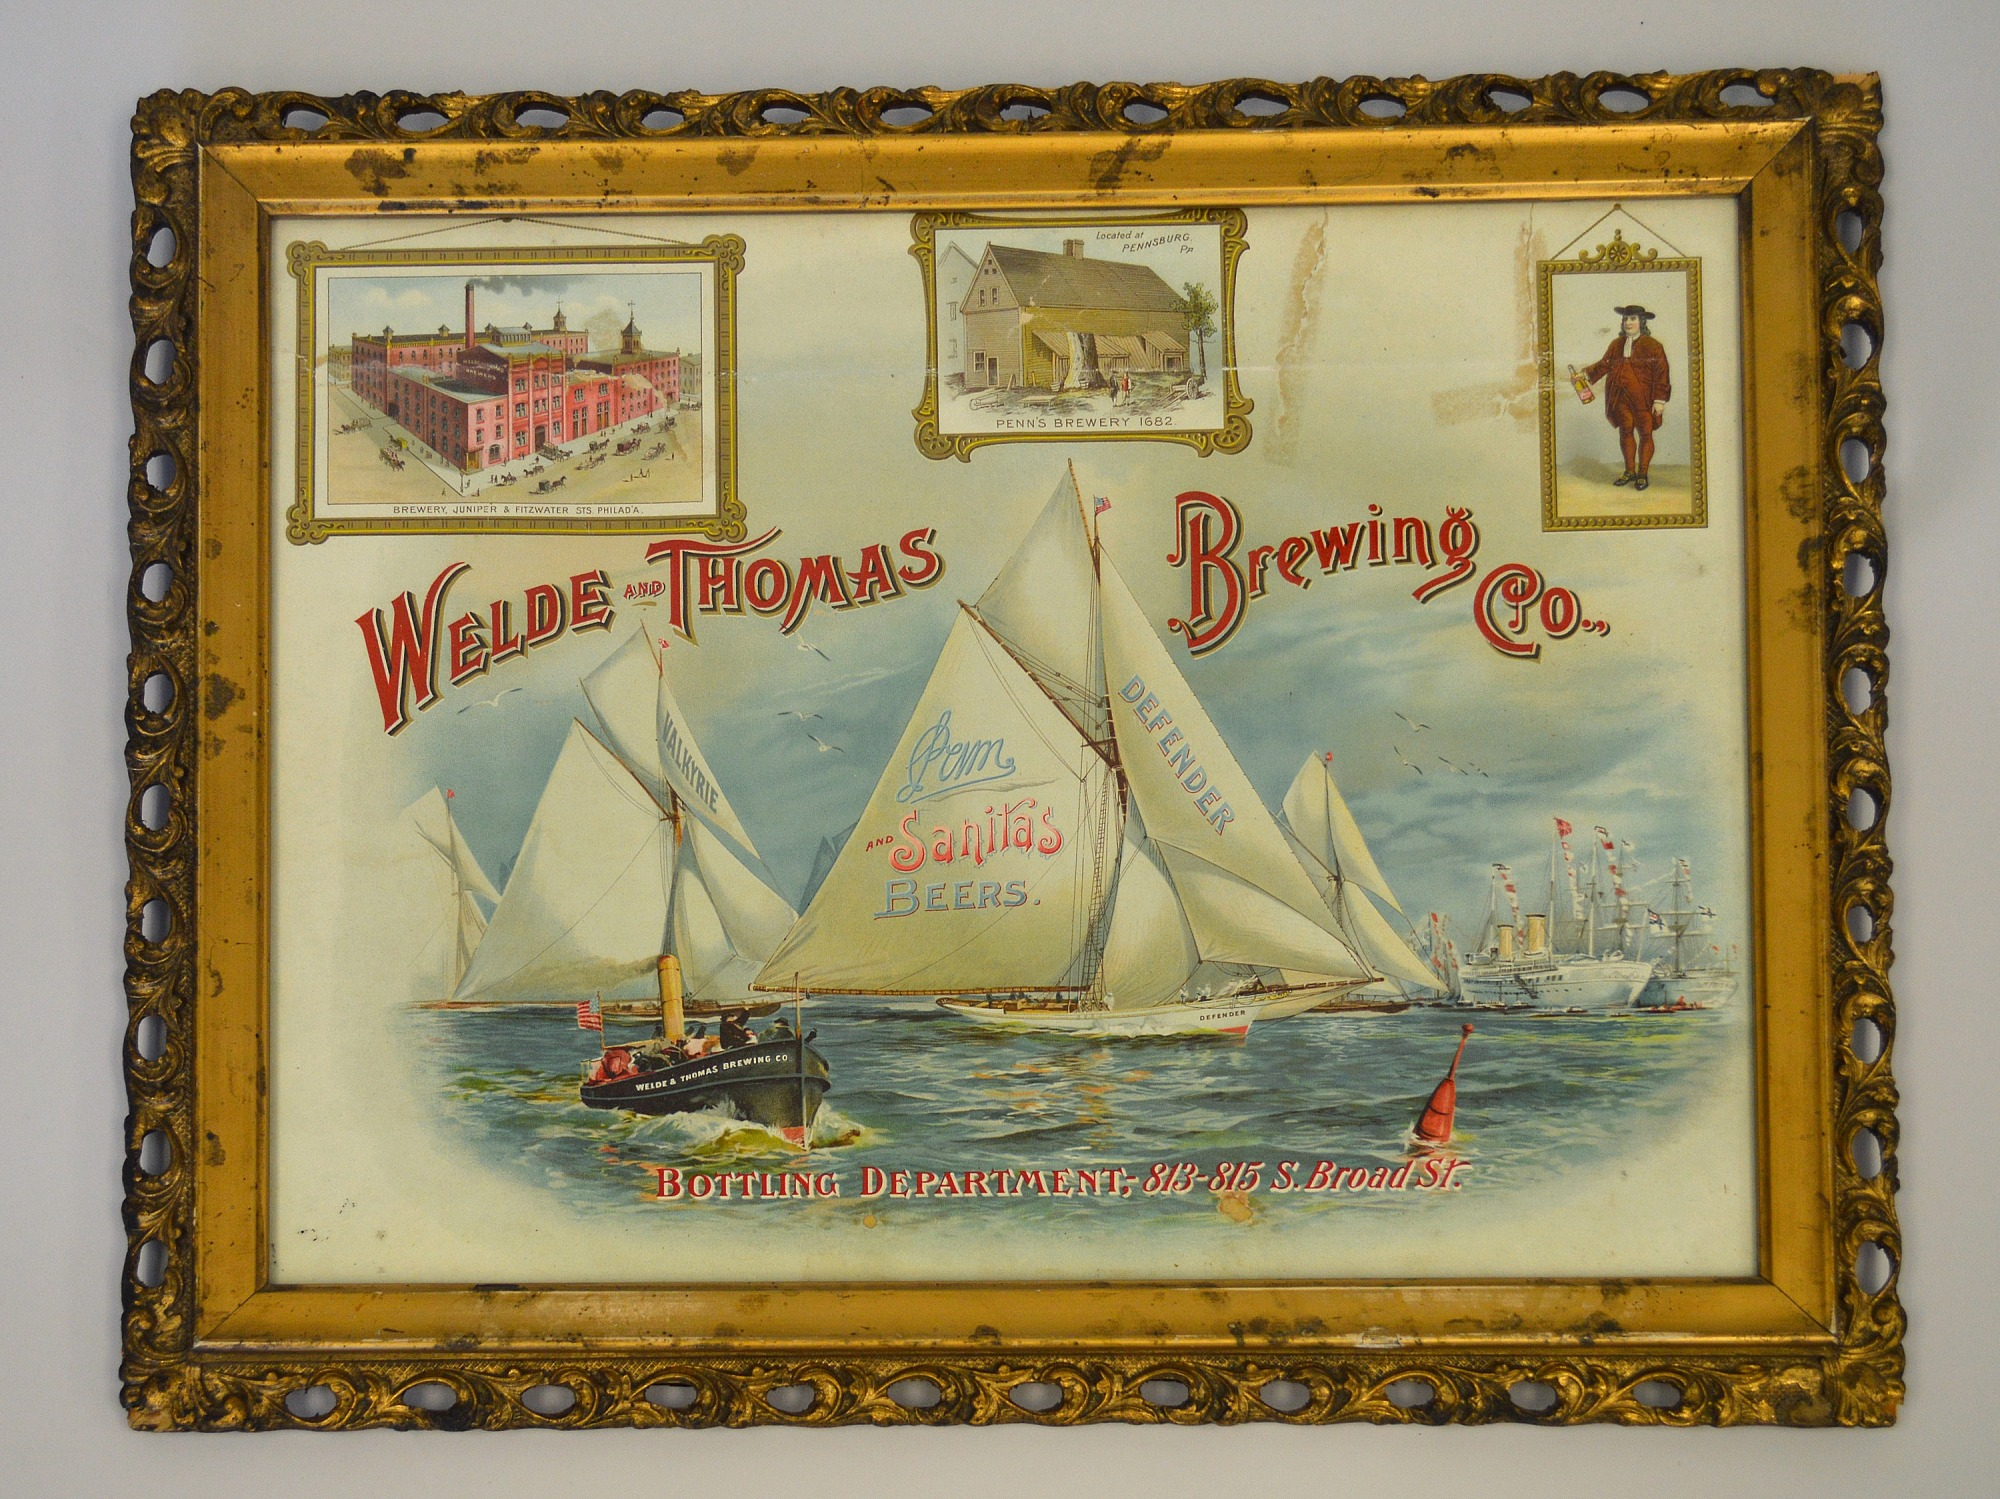 images for Framed Advertising Print, Welde and Thomas Brewing Co., ca. 1895